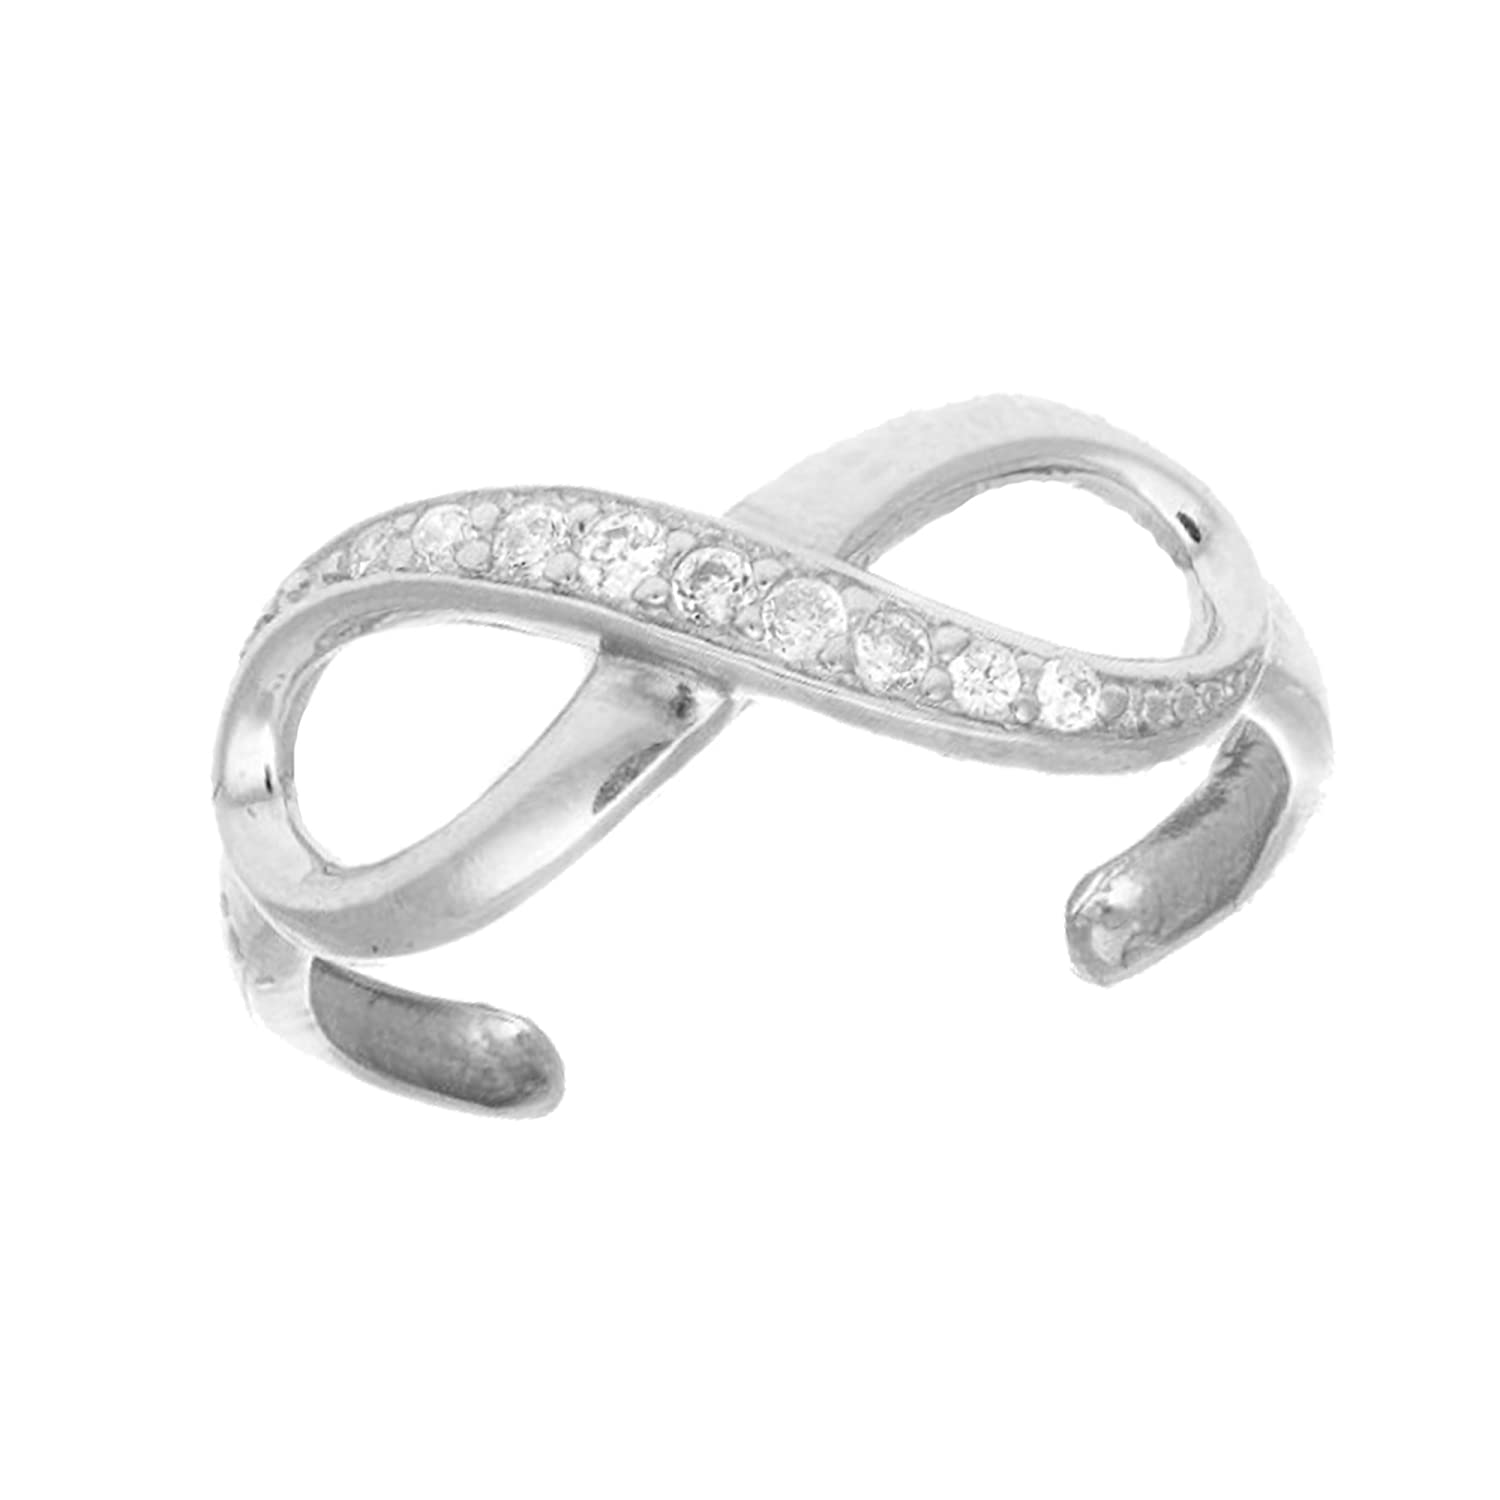 .925 Sterling Silver CZ Infinity Toe Ring Body Jewelry Adjustable Ritastephens 1